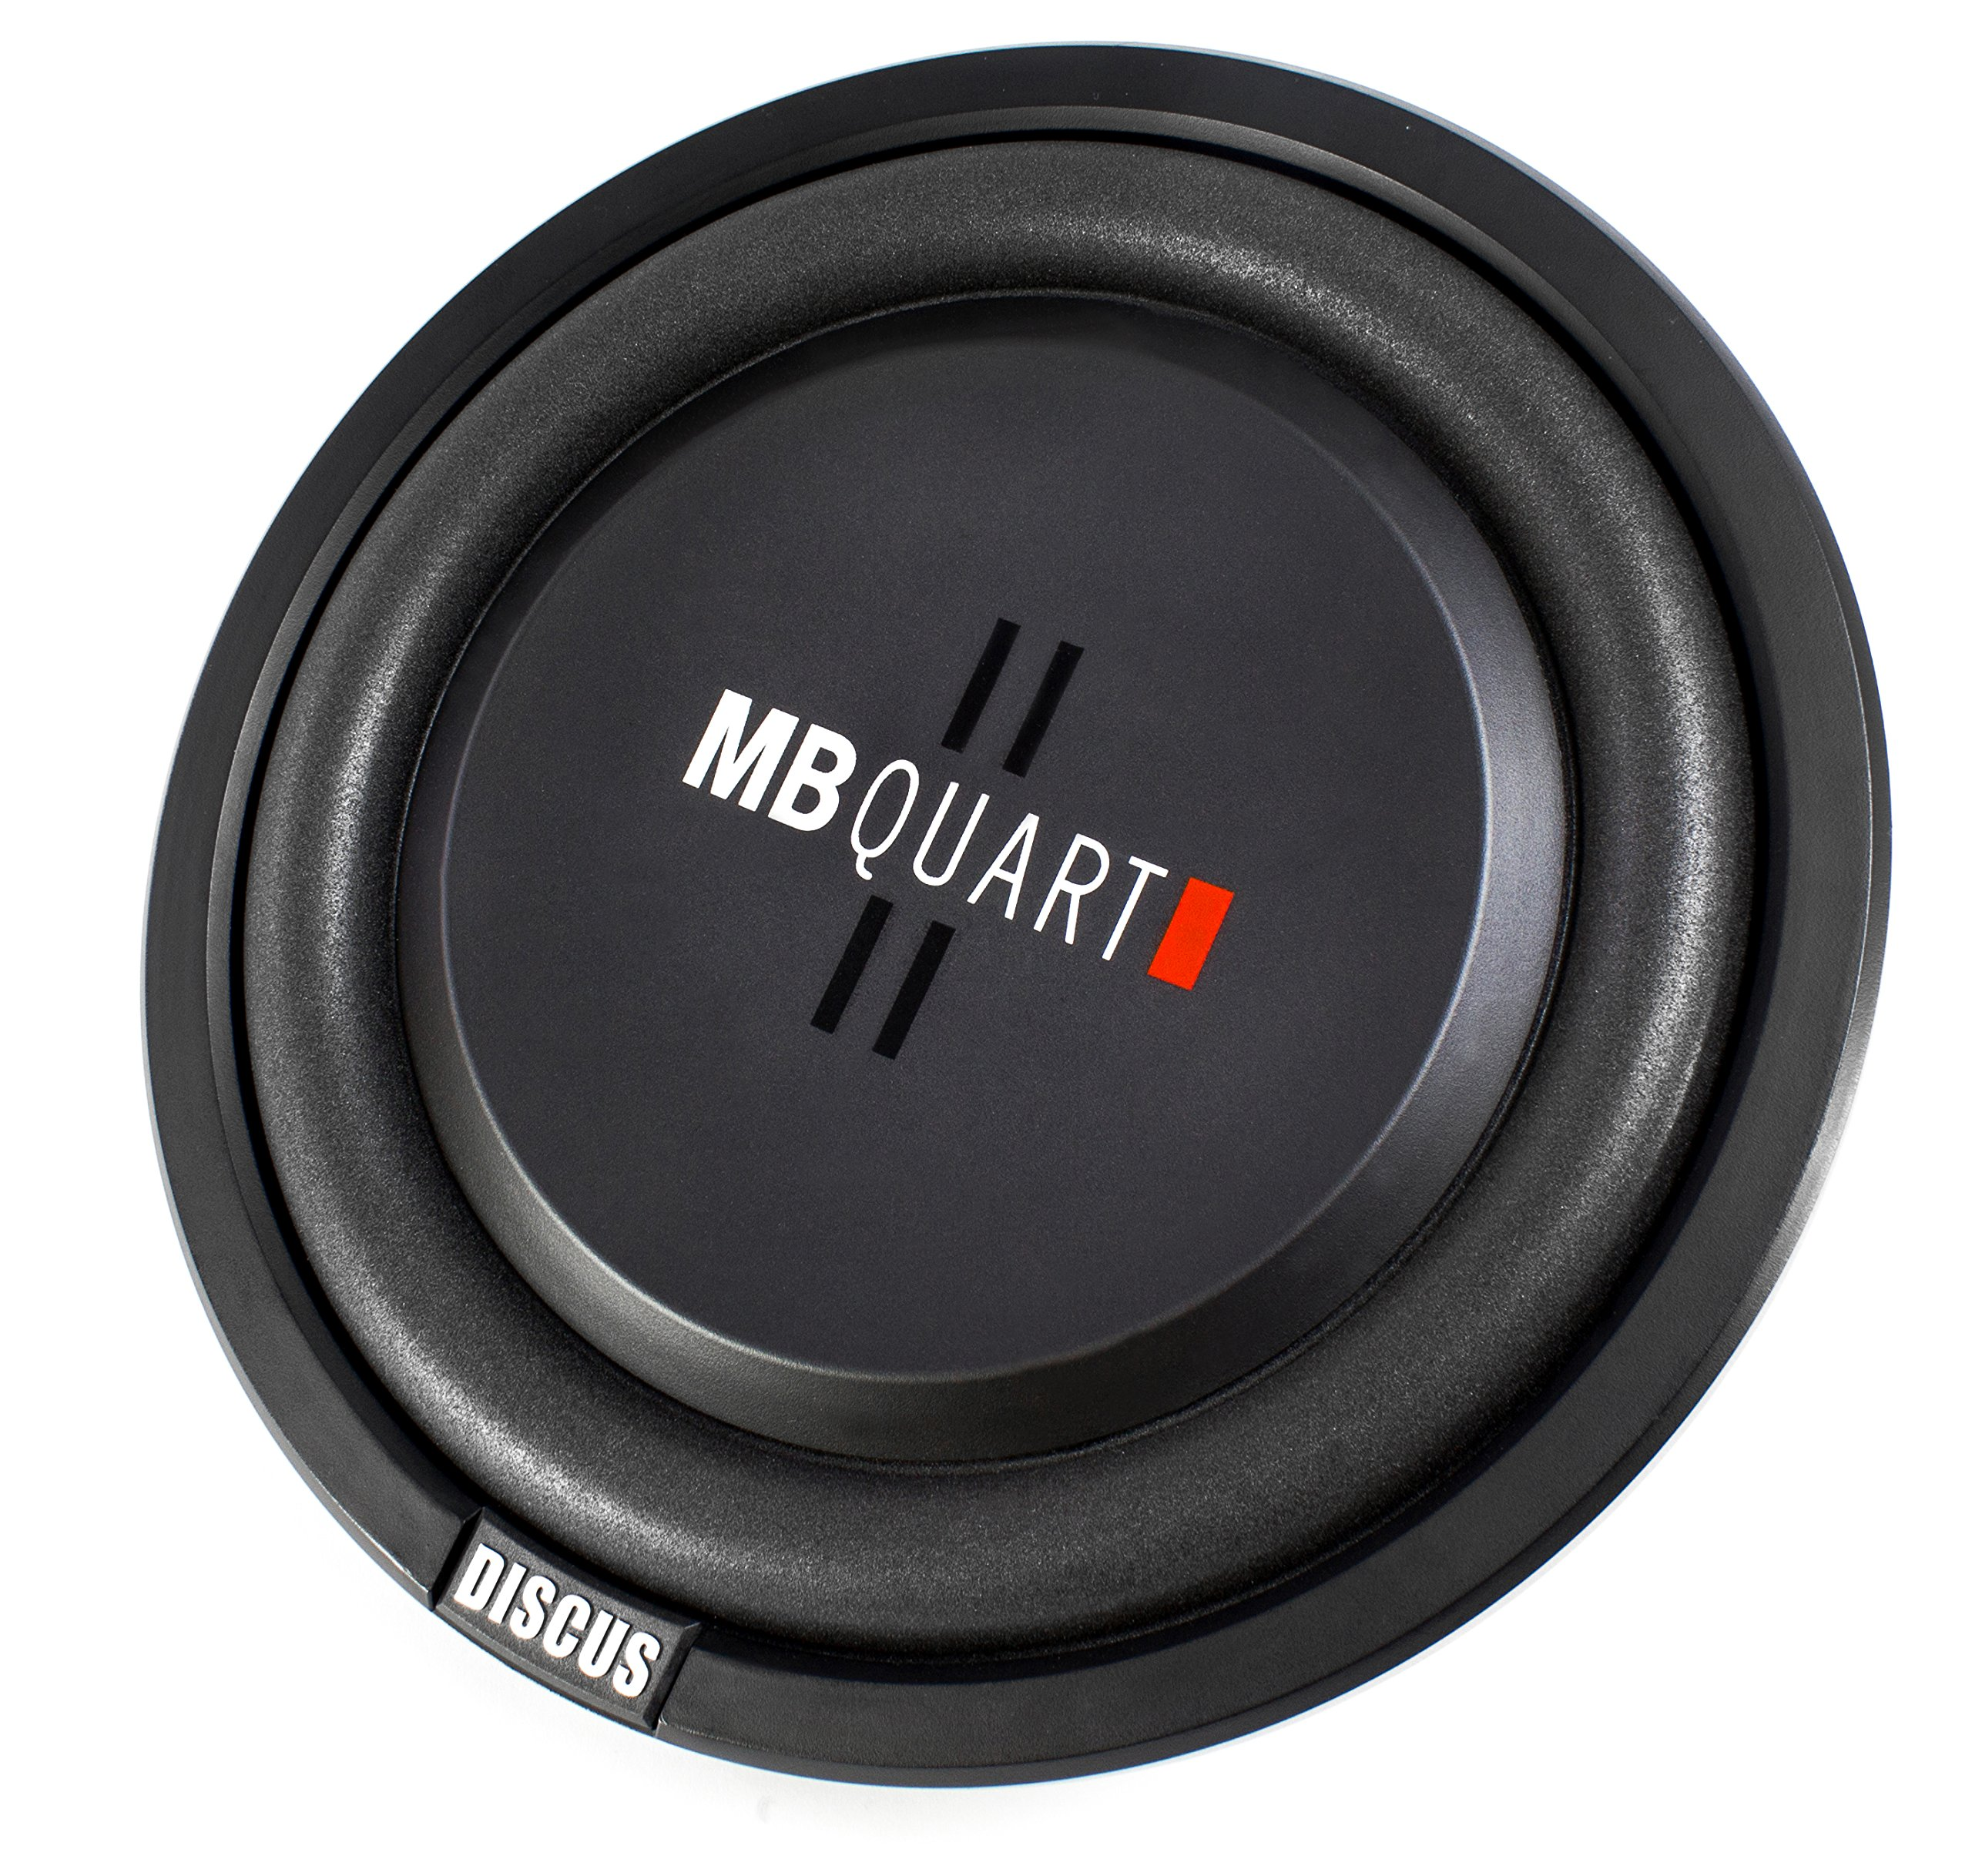 MB QUART DS1-304 Discus Series 400W Shallow Subwoofer (12'') by MB Quart